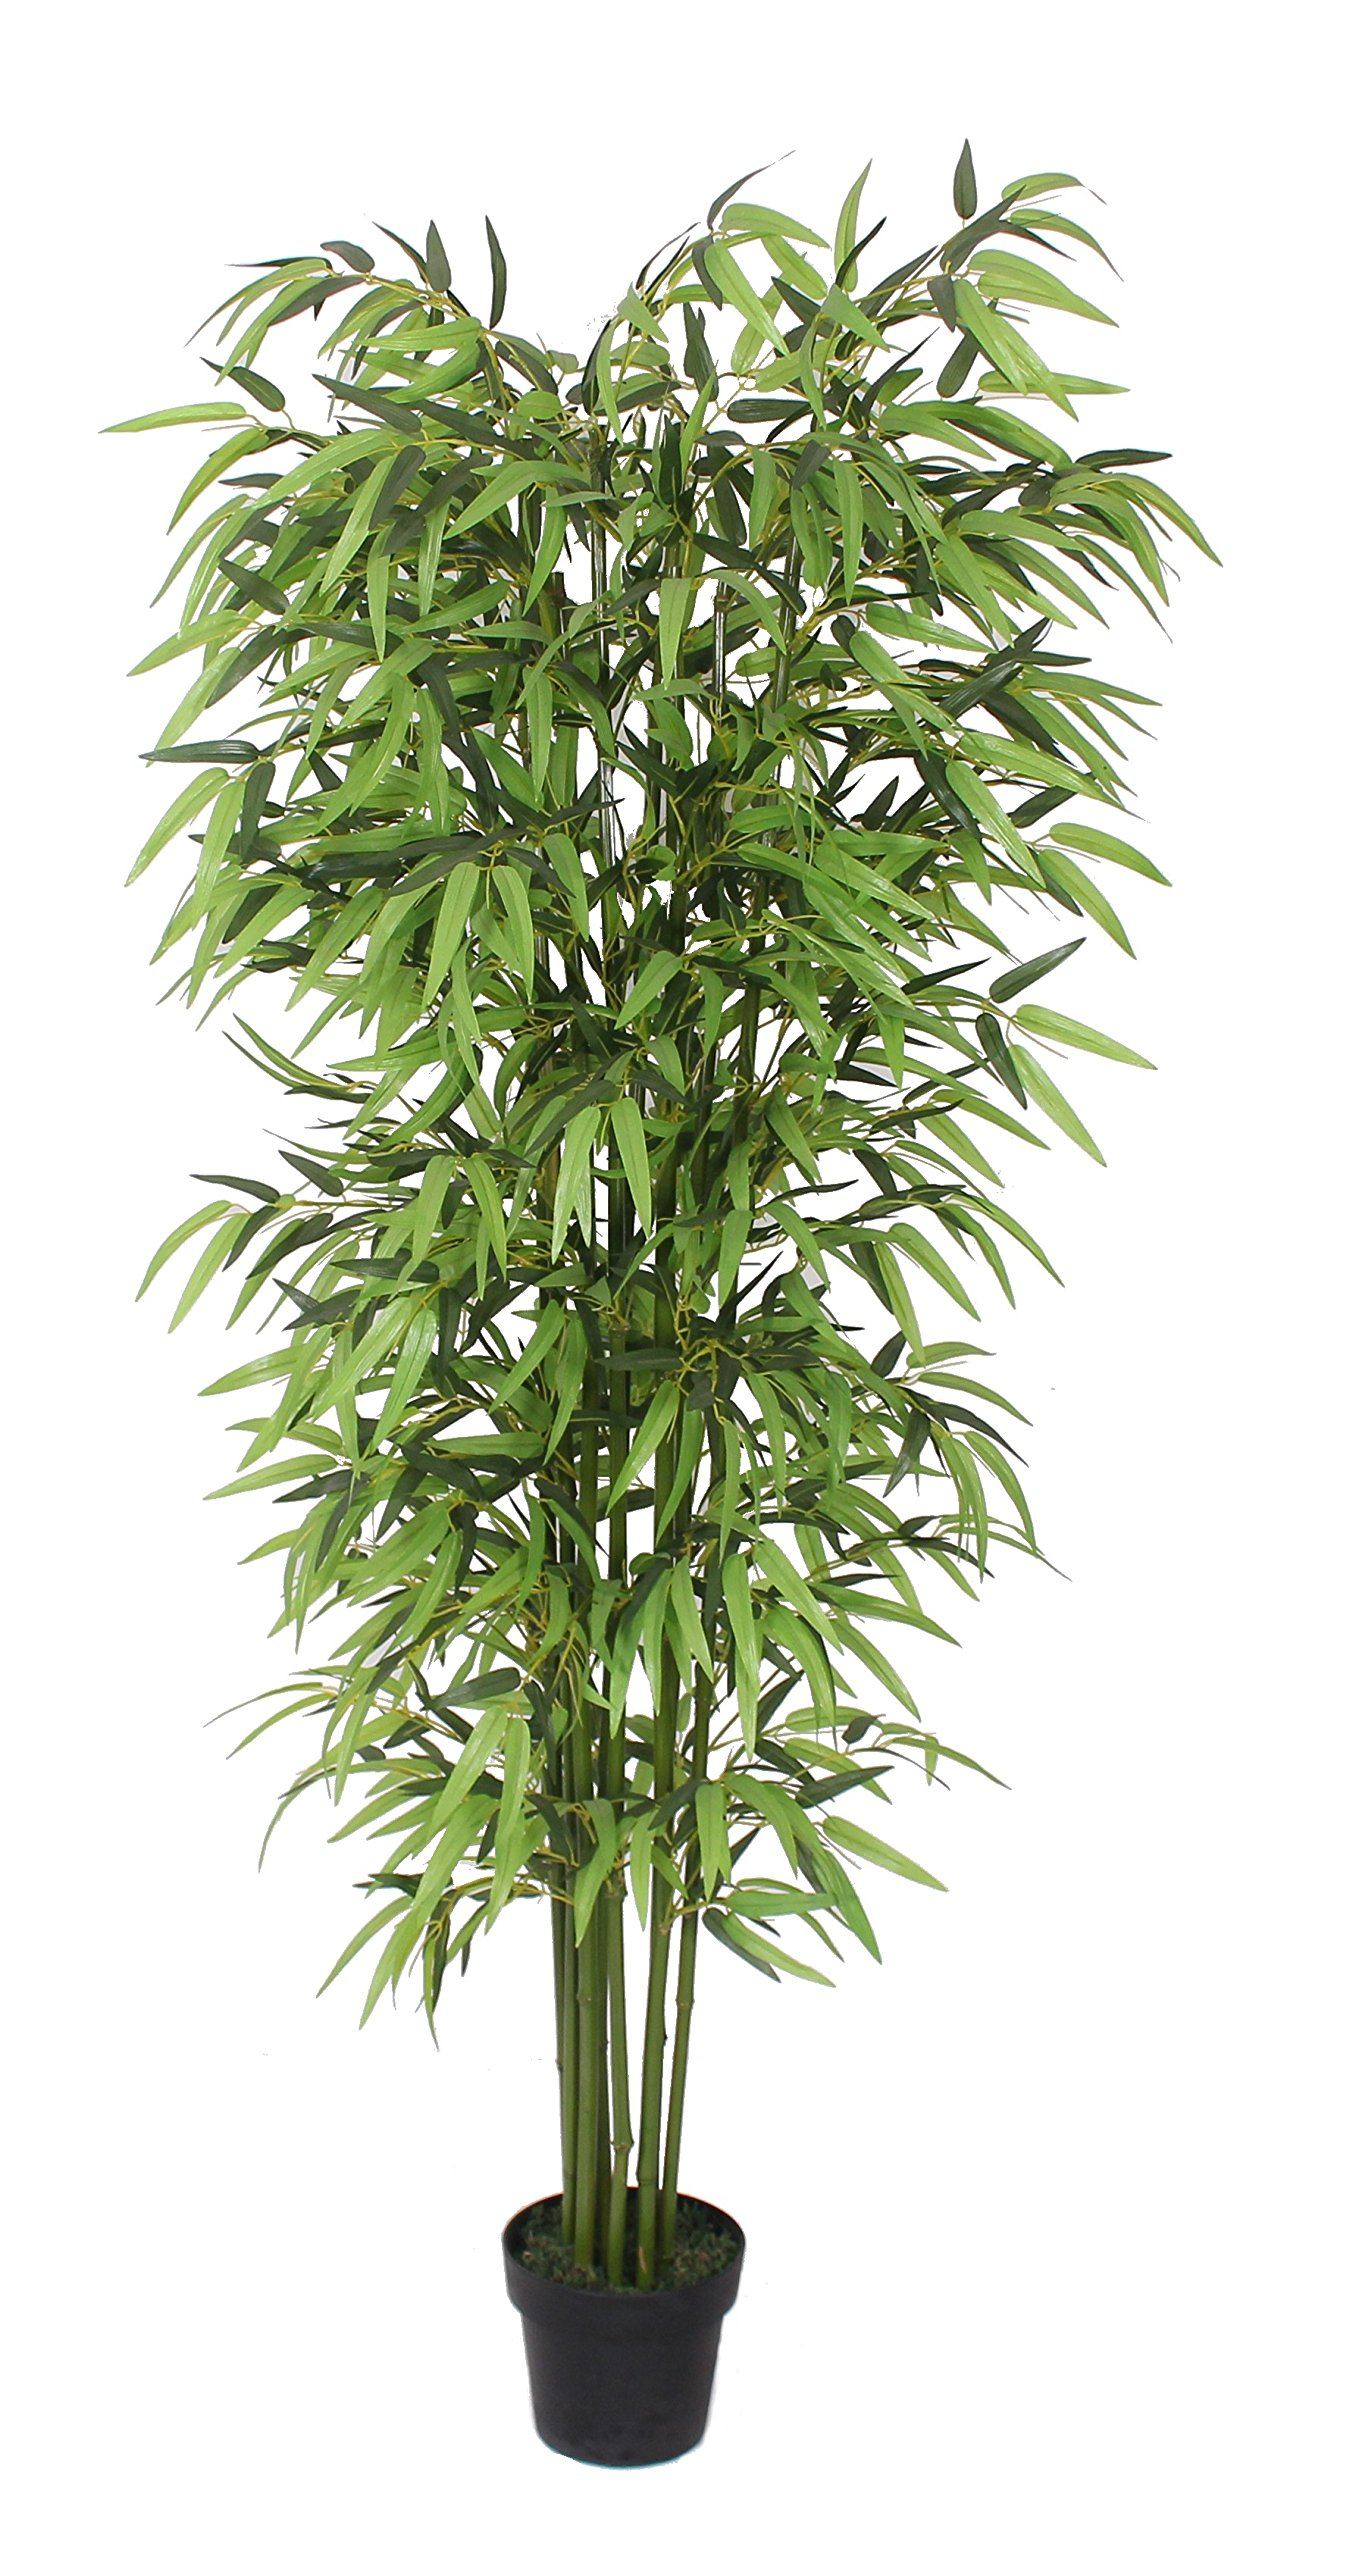 AMERIQUE Gorgeous 6 Feet Dense Bamboo Tree Artificial Plant w Nursery Plastic Pot, Real Touch Tech, w UV Protection, Unique 6 Technology Super Quality, 6', Green